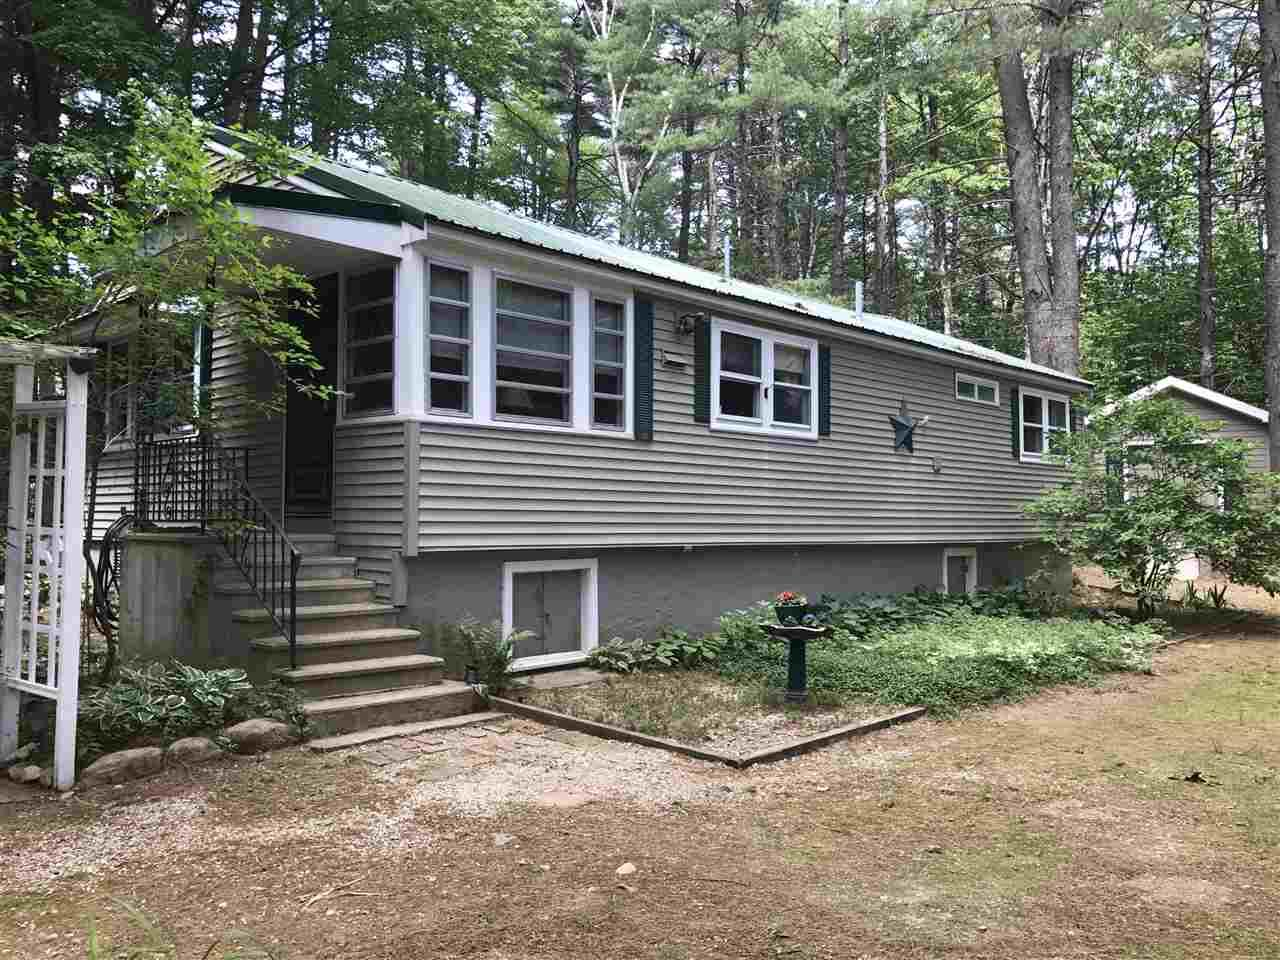 276 Bonnyman Rd East Wakefield Nh Mls 4641878 Better Homes And Gardens Real Estate